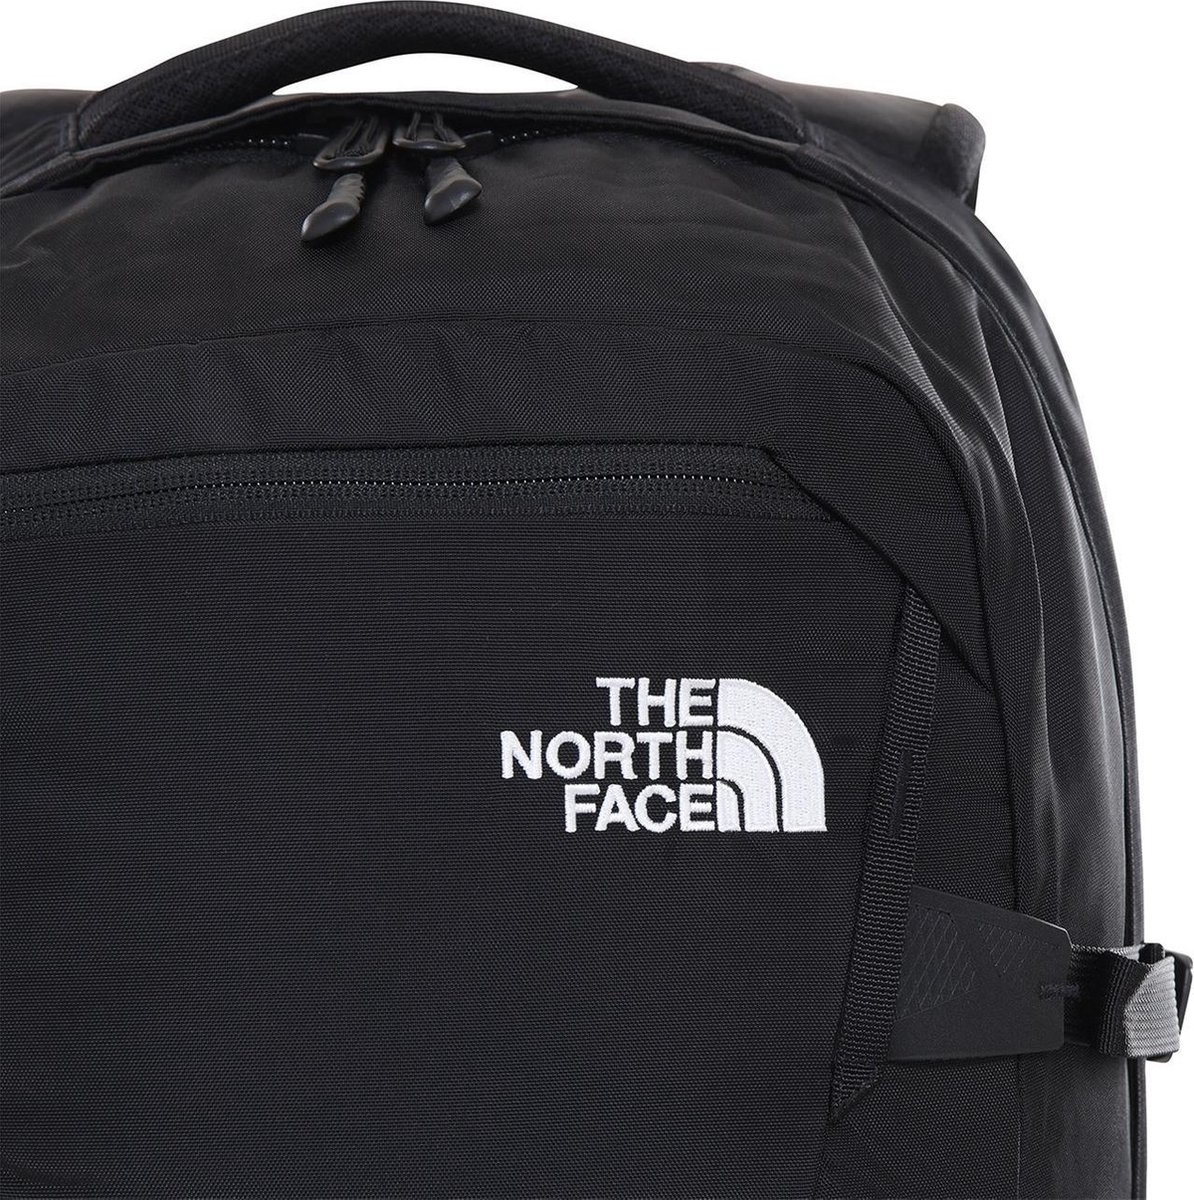 The North Face The North Face Fall Line TNF Black 15 inch laptoprugzak